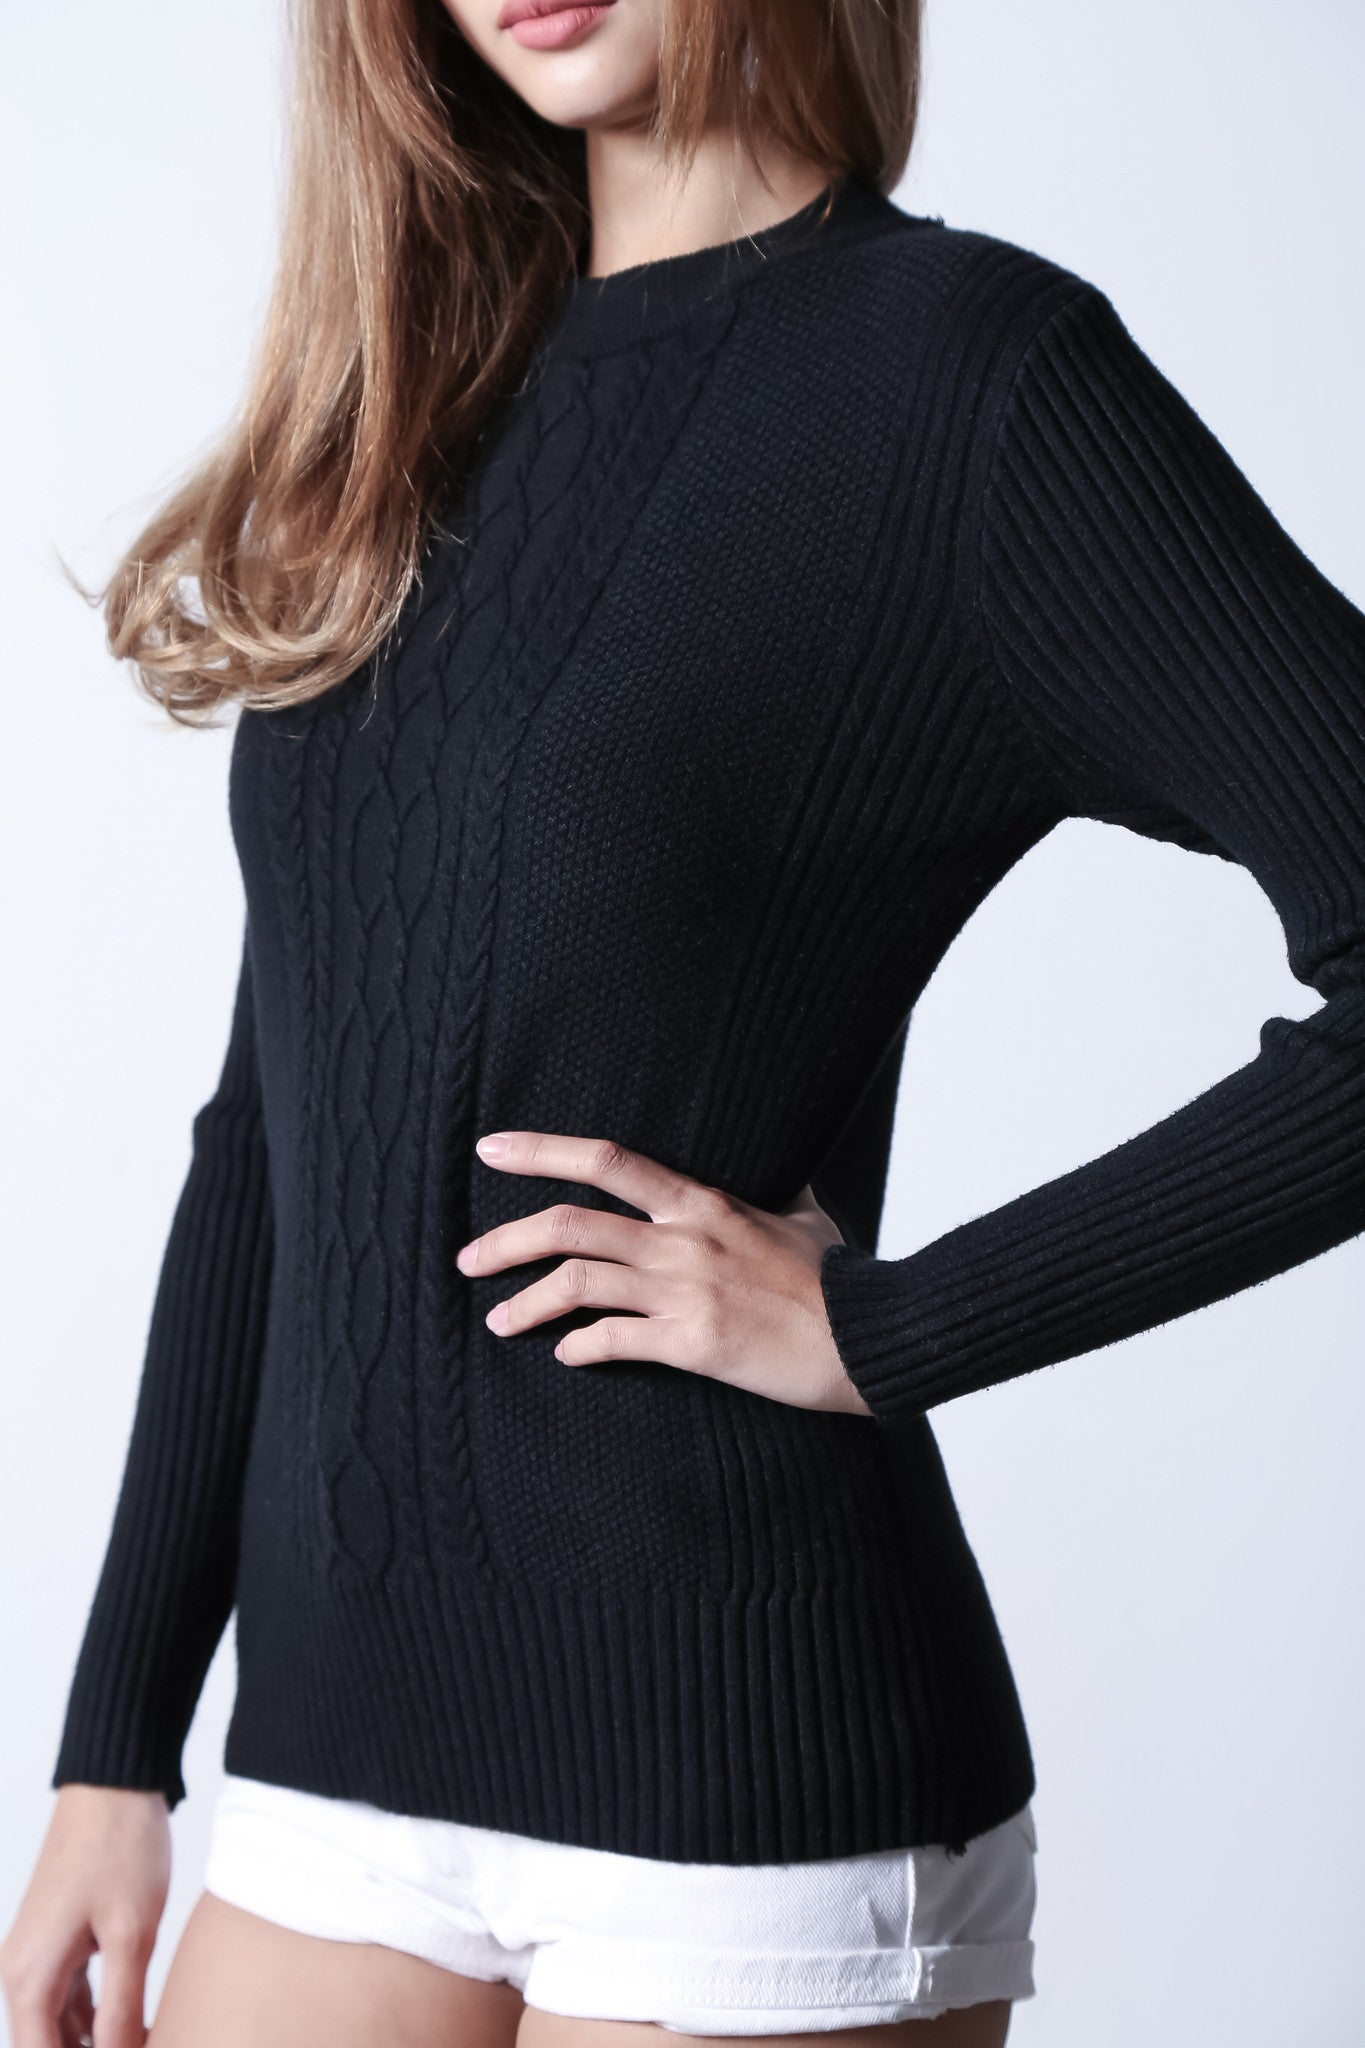 *RESTOCKED* VUITTON CABLE KNIT TOP IN BLACK - TOPAZETTE